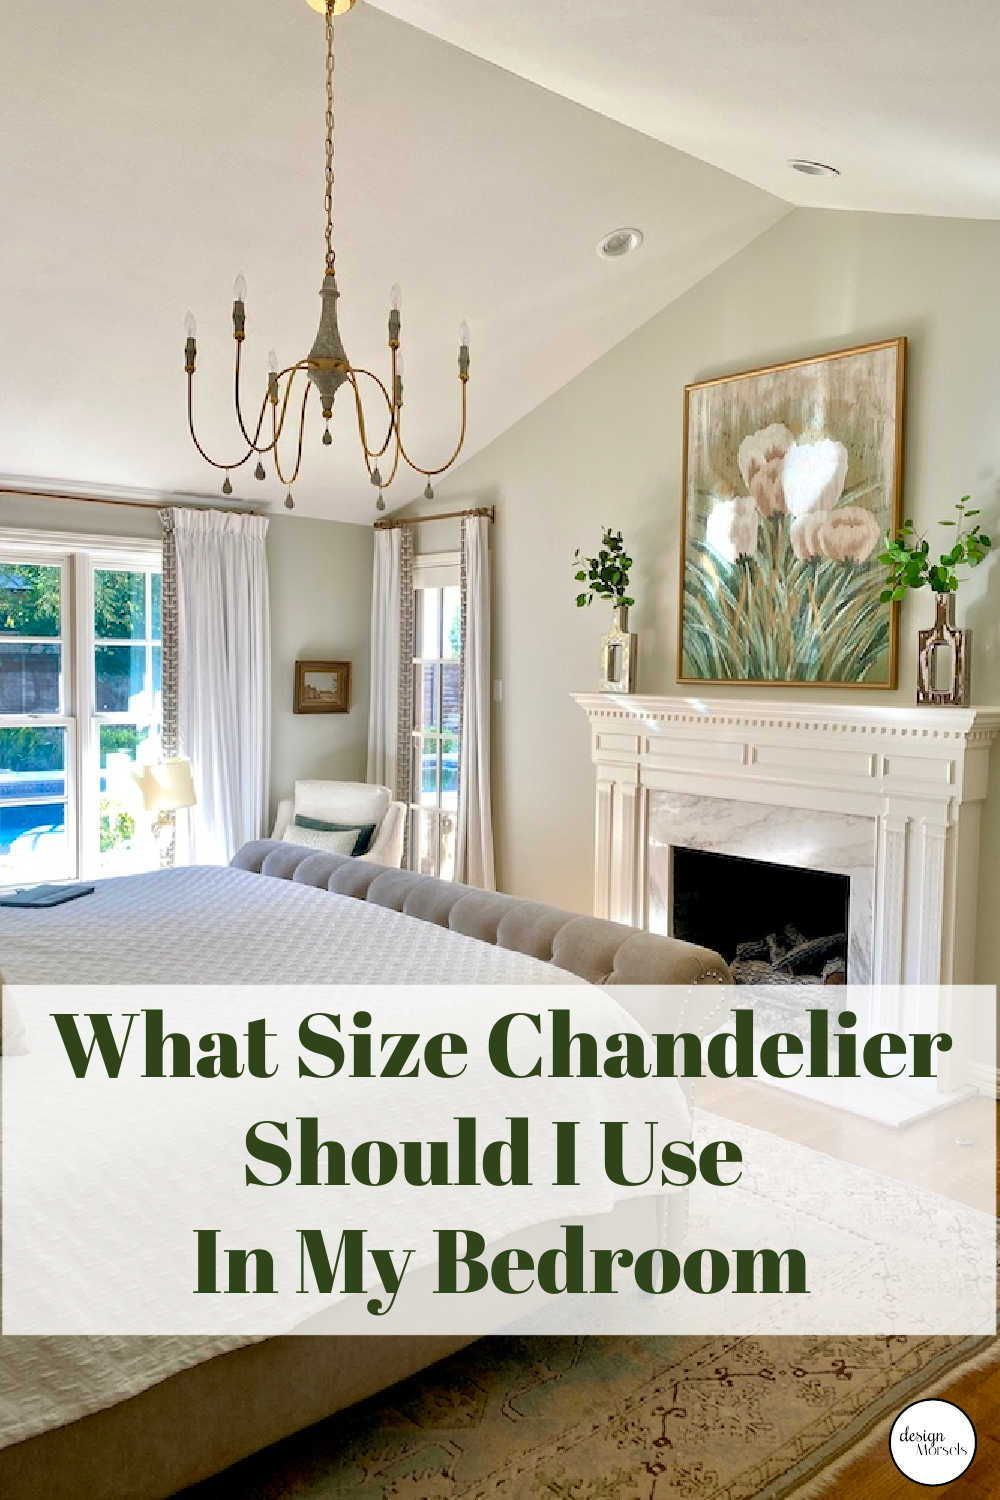 Chandelier Size Guide - Design Morsels  Master bedroom lighting